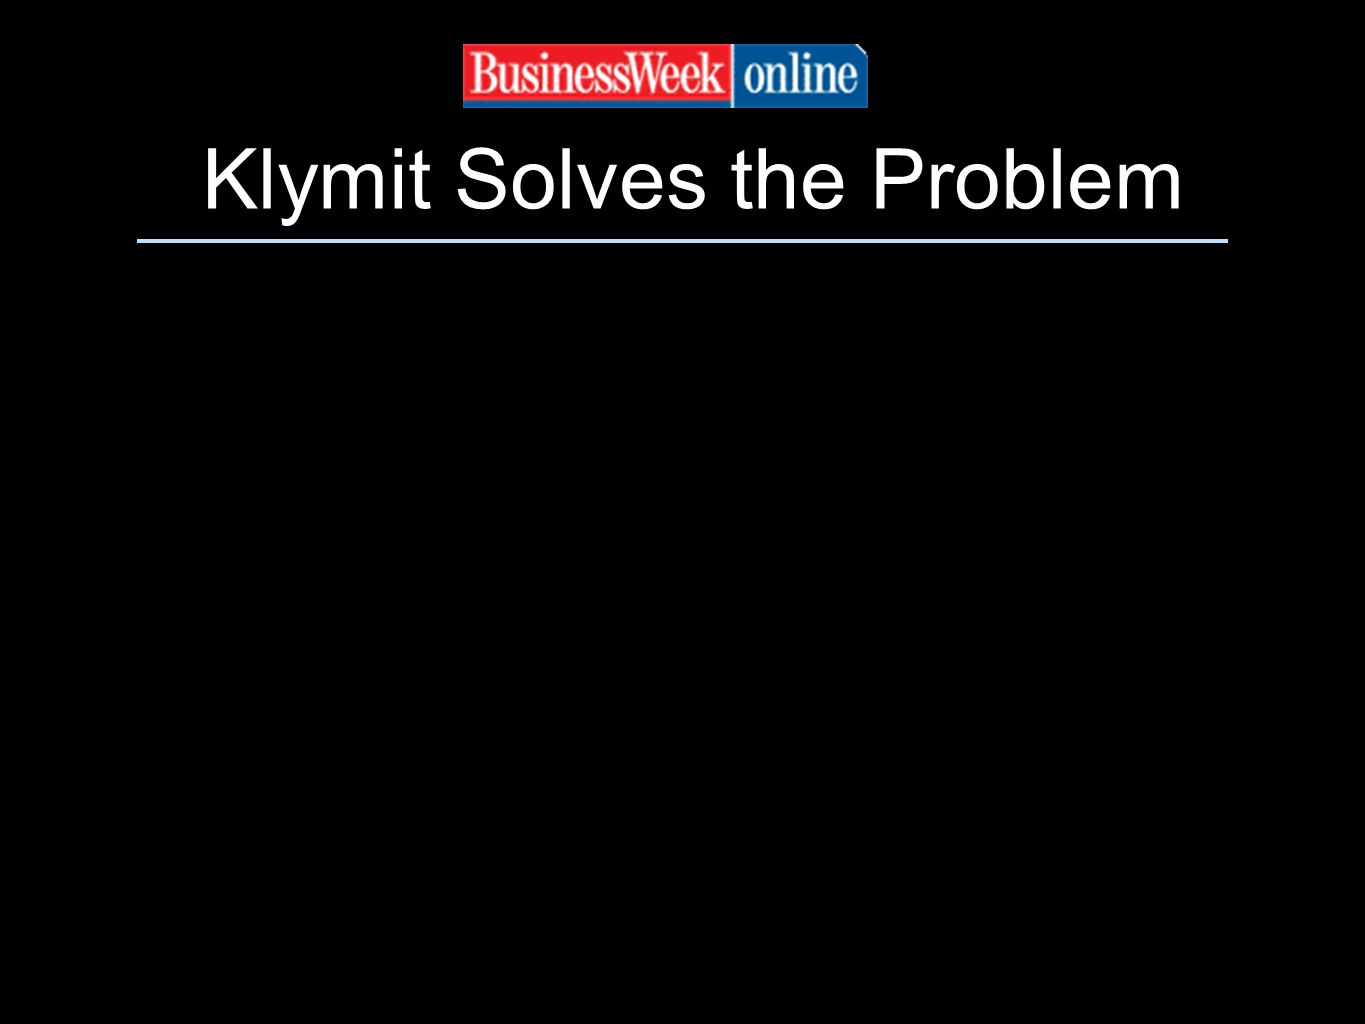 Klymit Solves the Problem